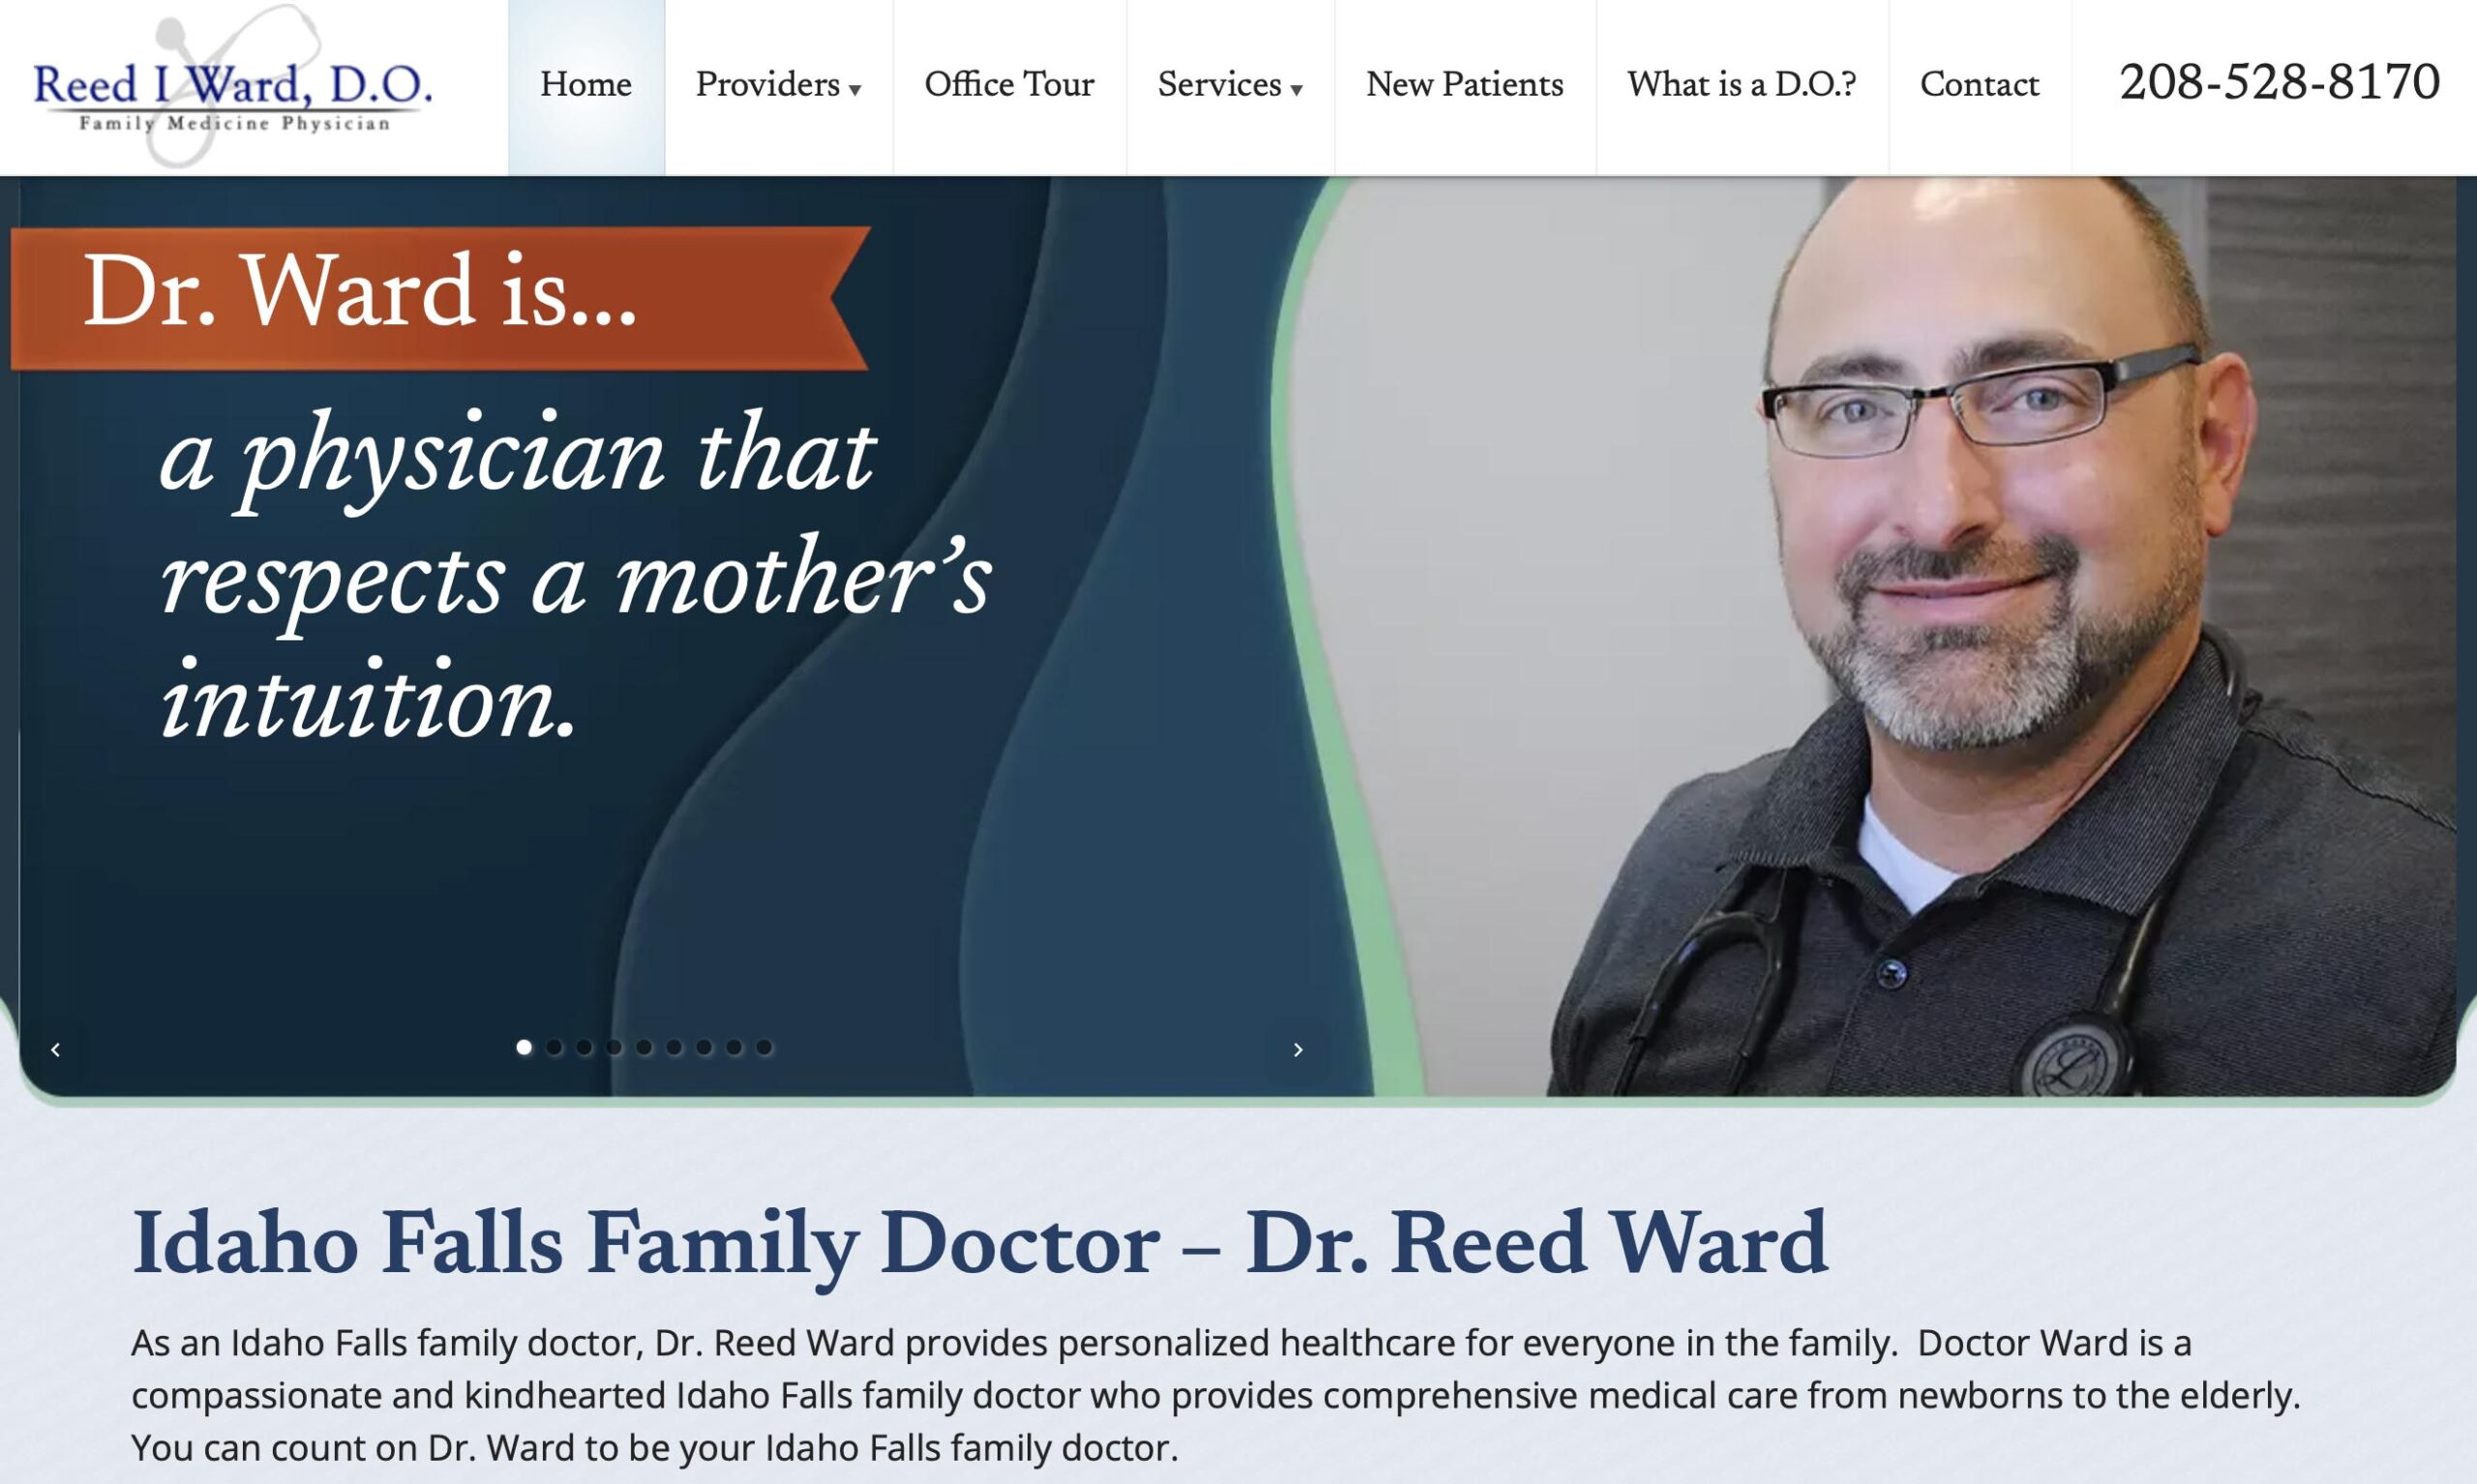 Marketing consultant - website developer project for Dr. Reed Ward